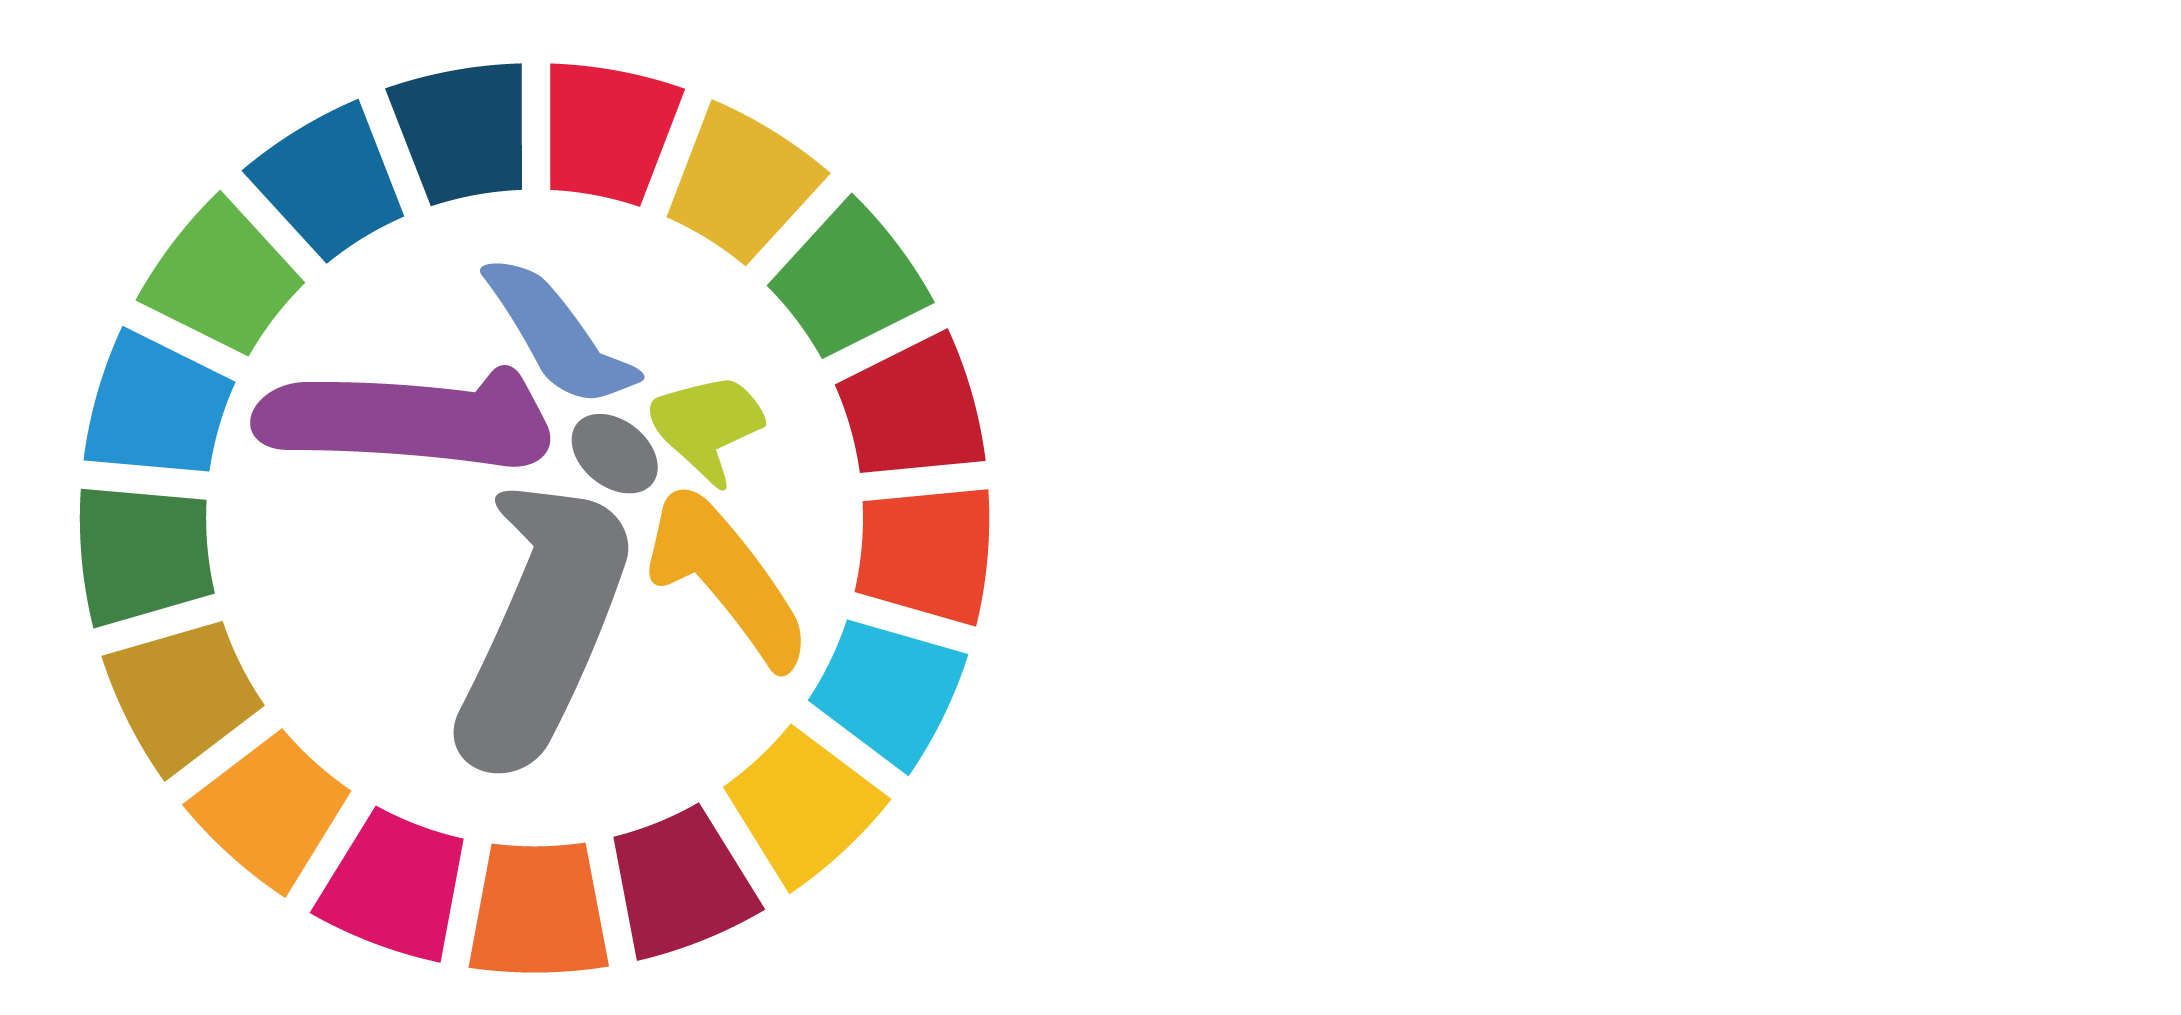 WSIS Action Lines for achieving SDGs